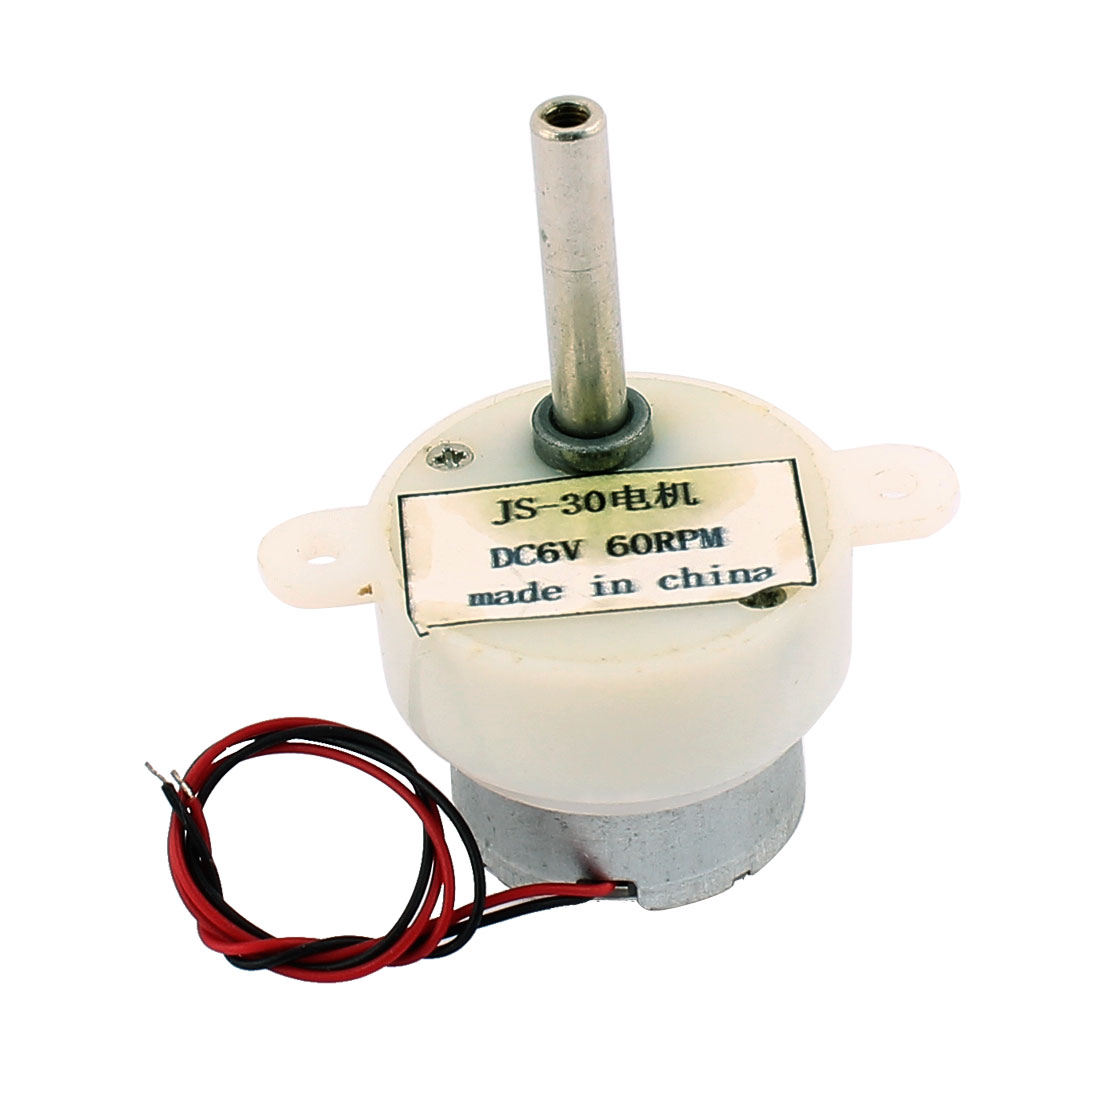 DC 6V 60RPM 2 Wires Connecting  Micro Motor for Air Condition Water Heater